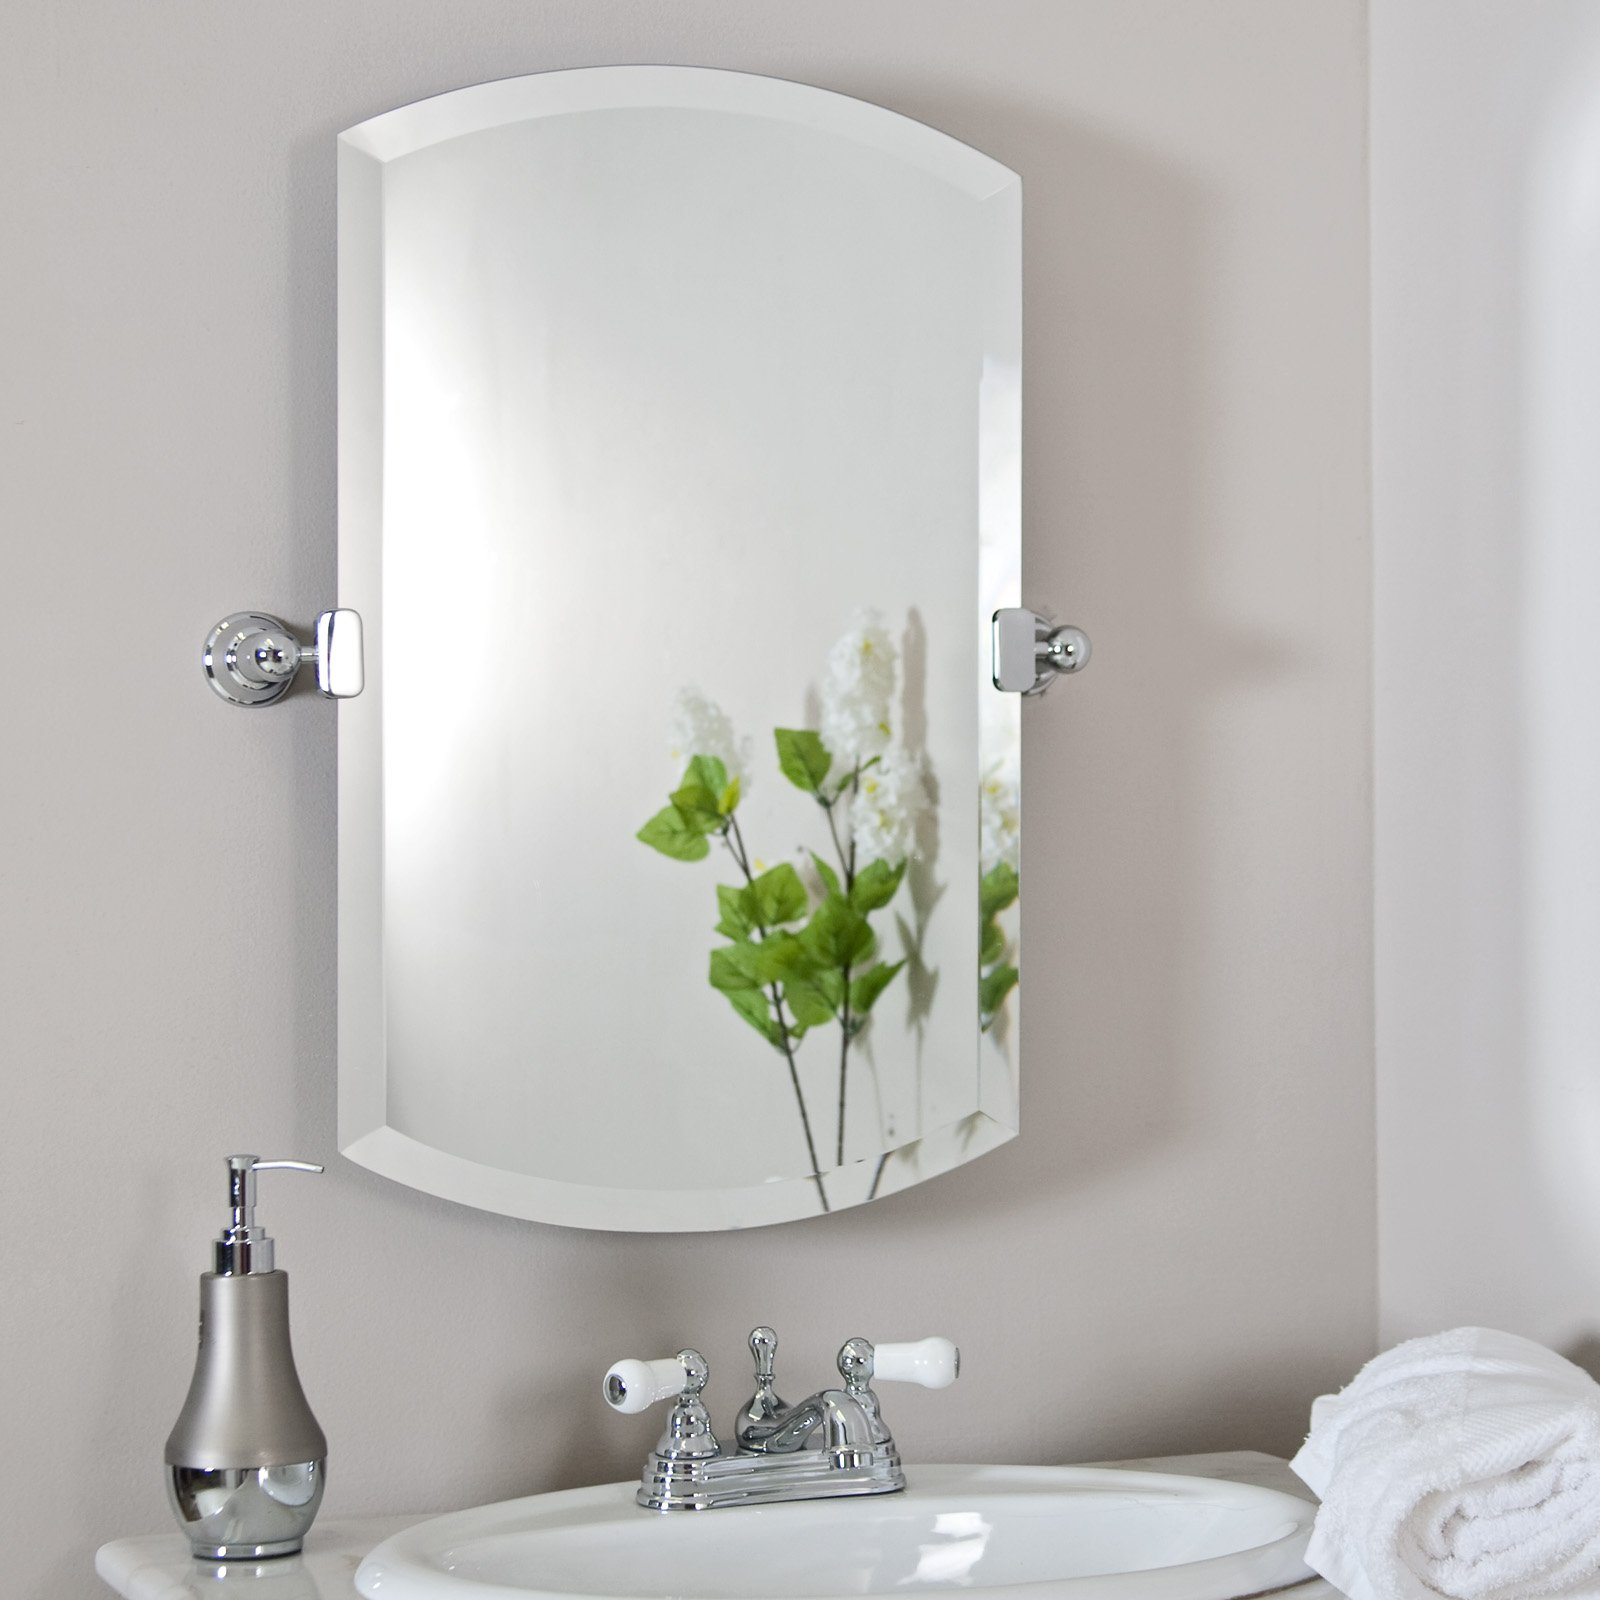 Pictures of bathroom mirrors